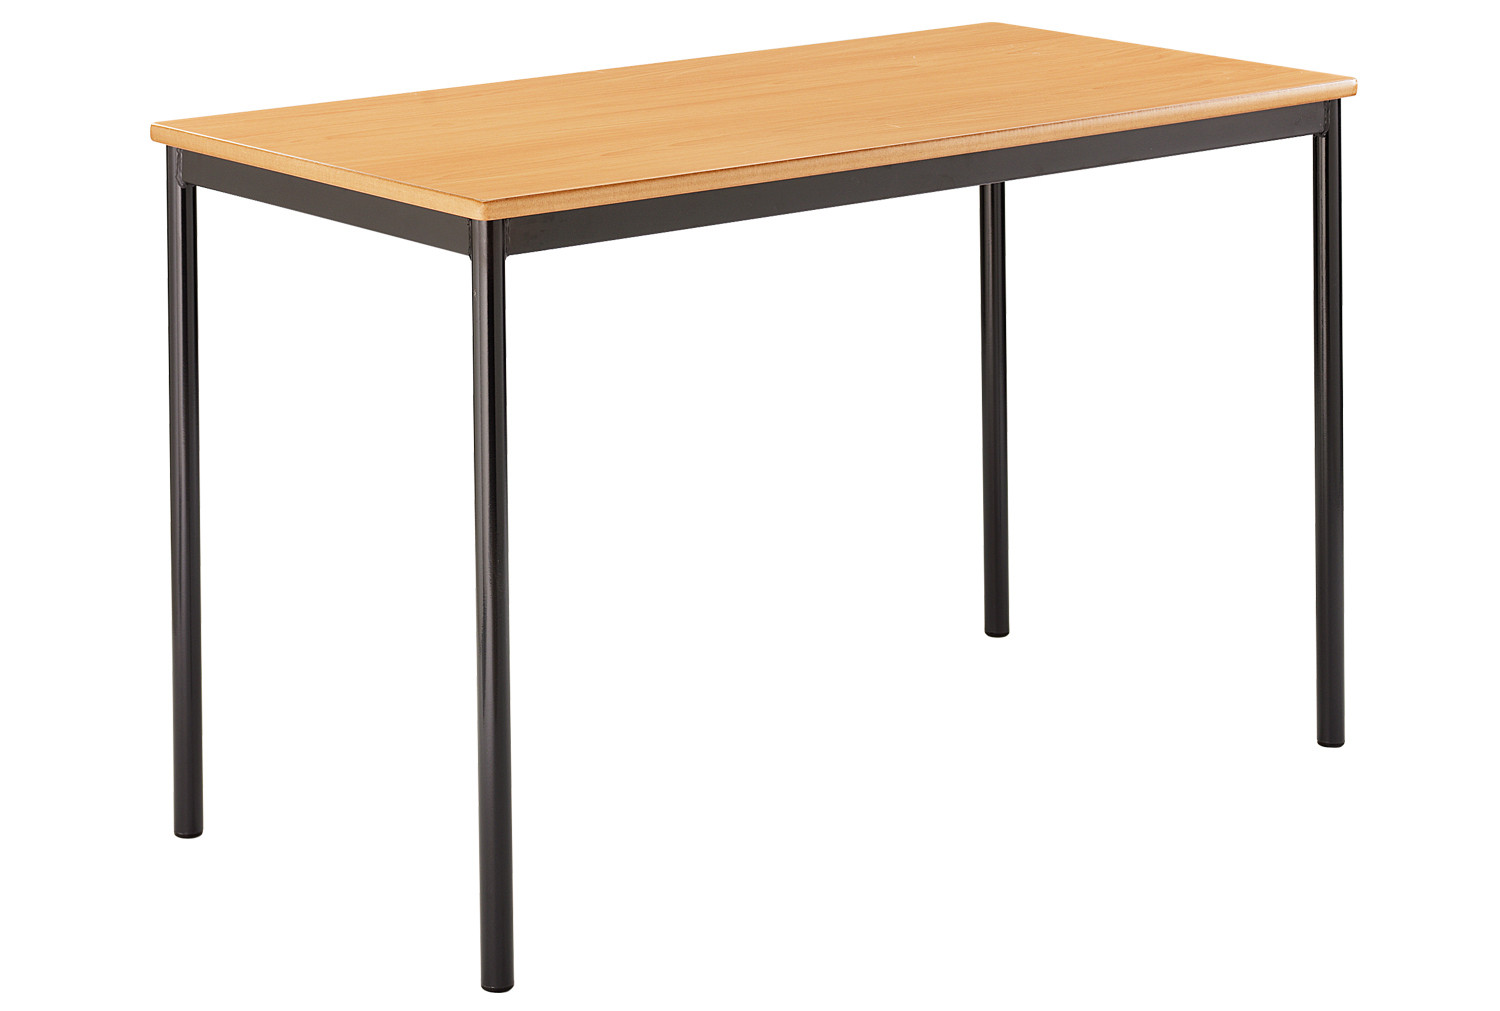 Rectangular Fully Welded Classroom Tables 4-6 Years